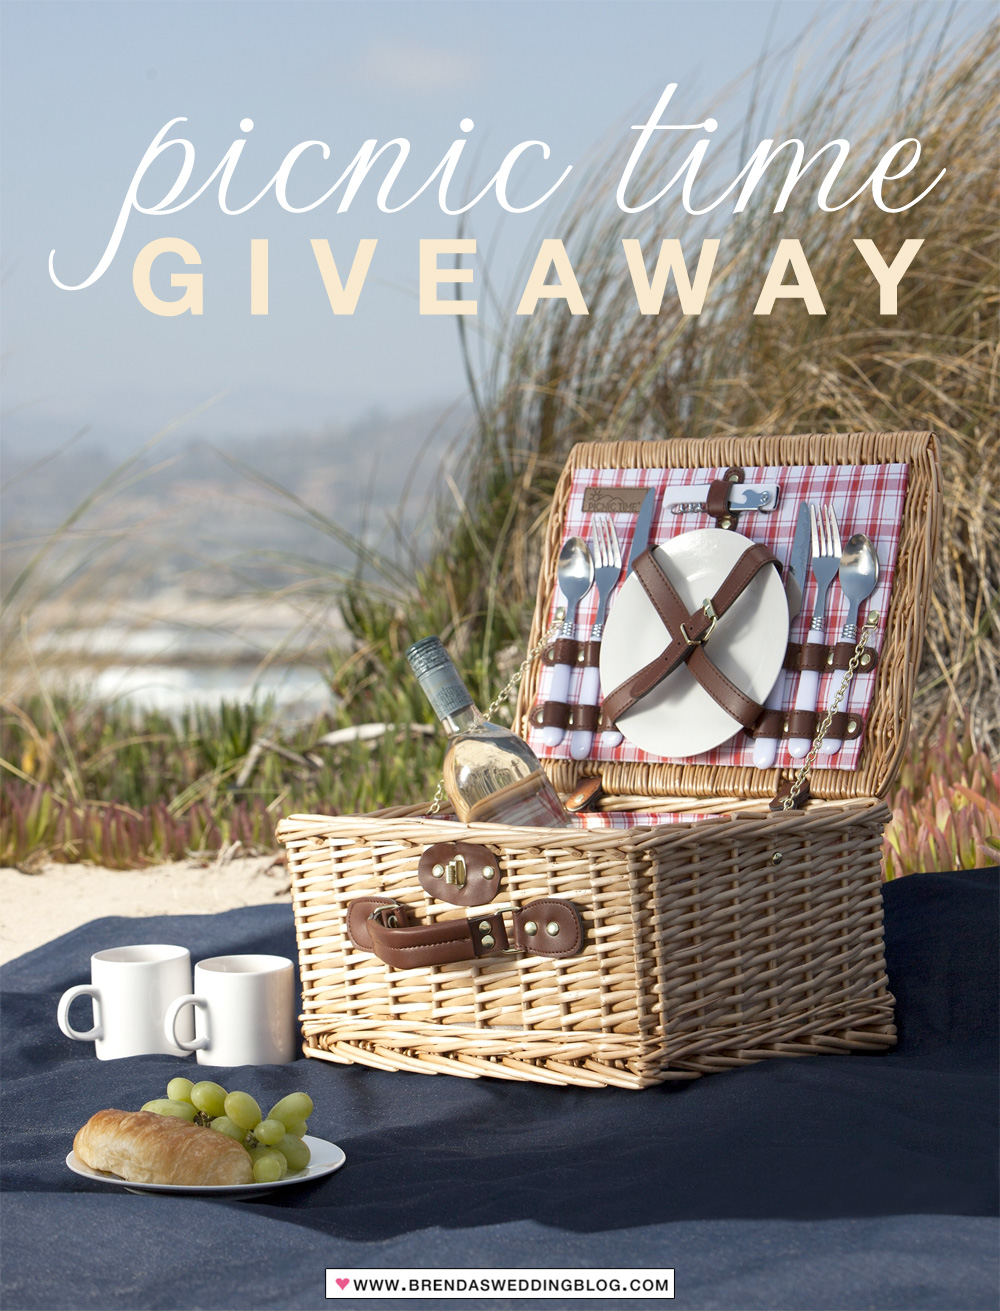 Picnic Basket Wedding Gift : It s wedding season picnic time celebrate with a